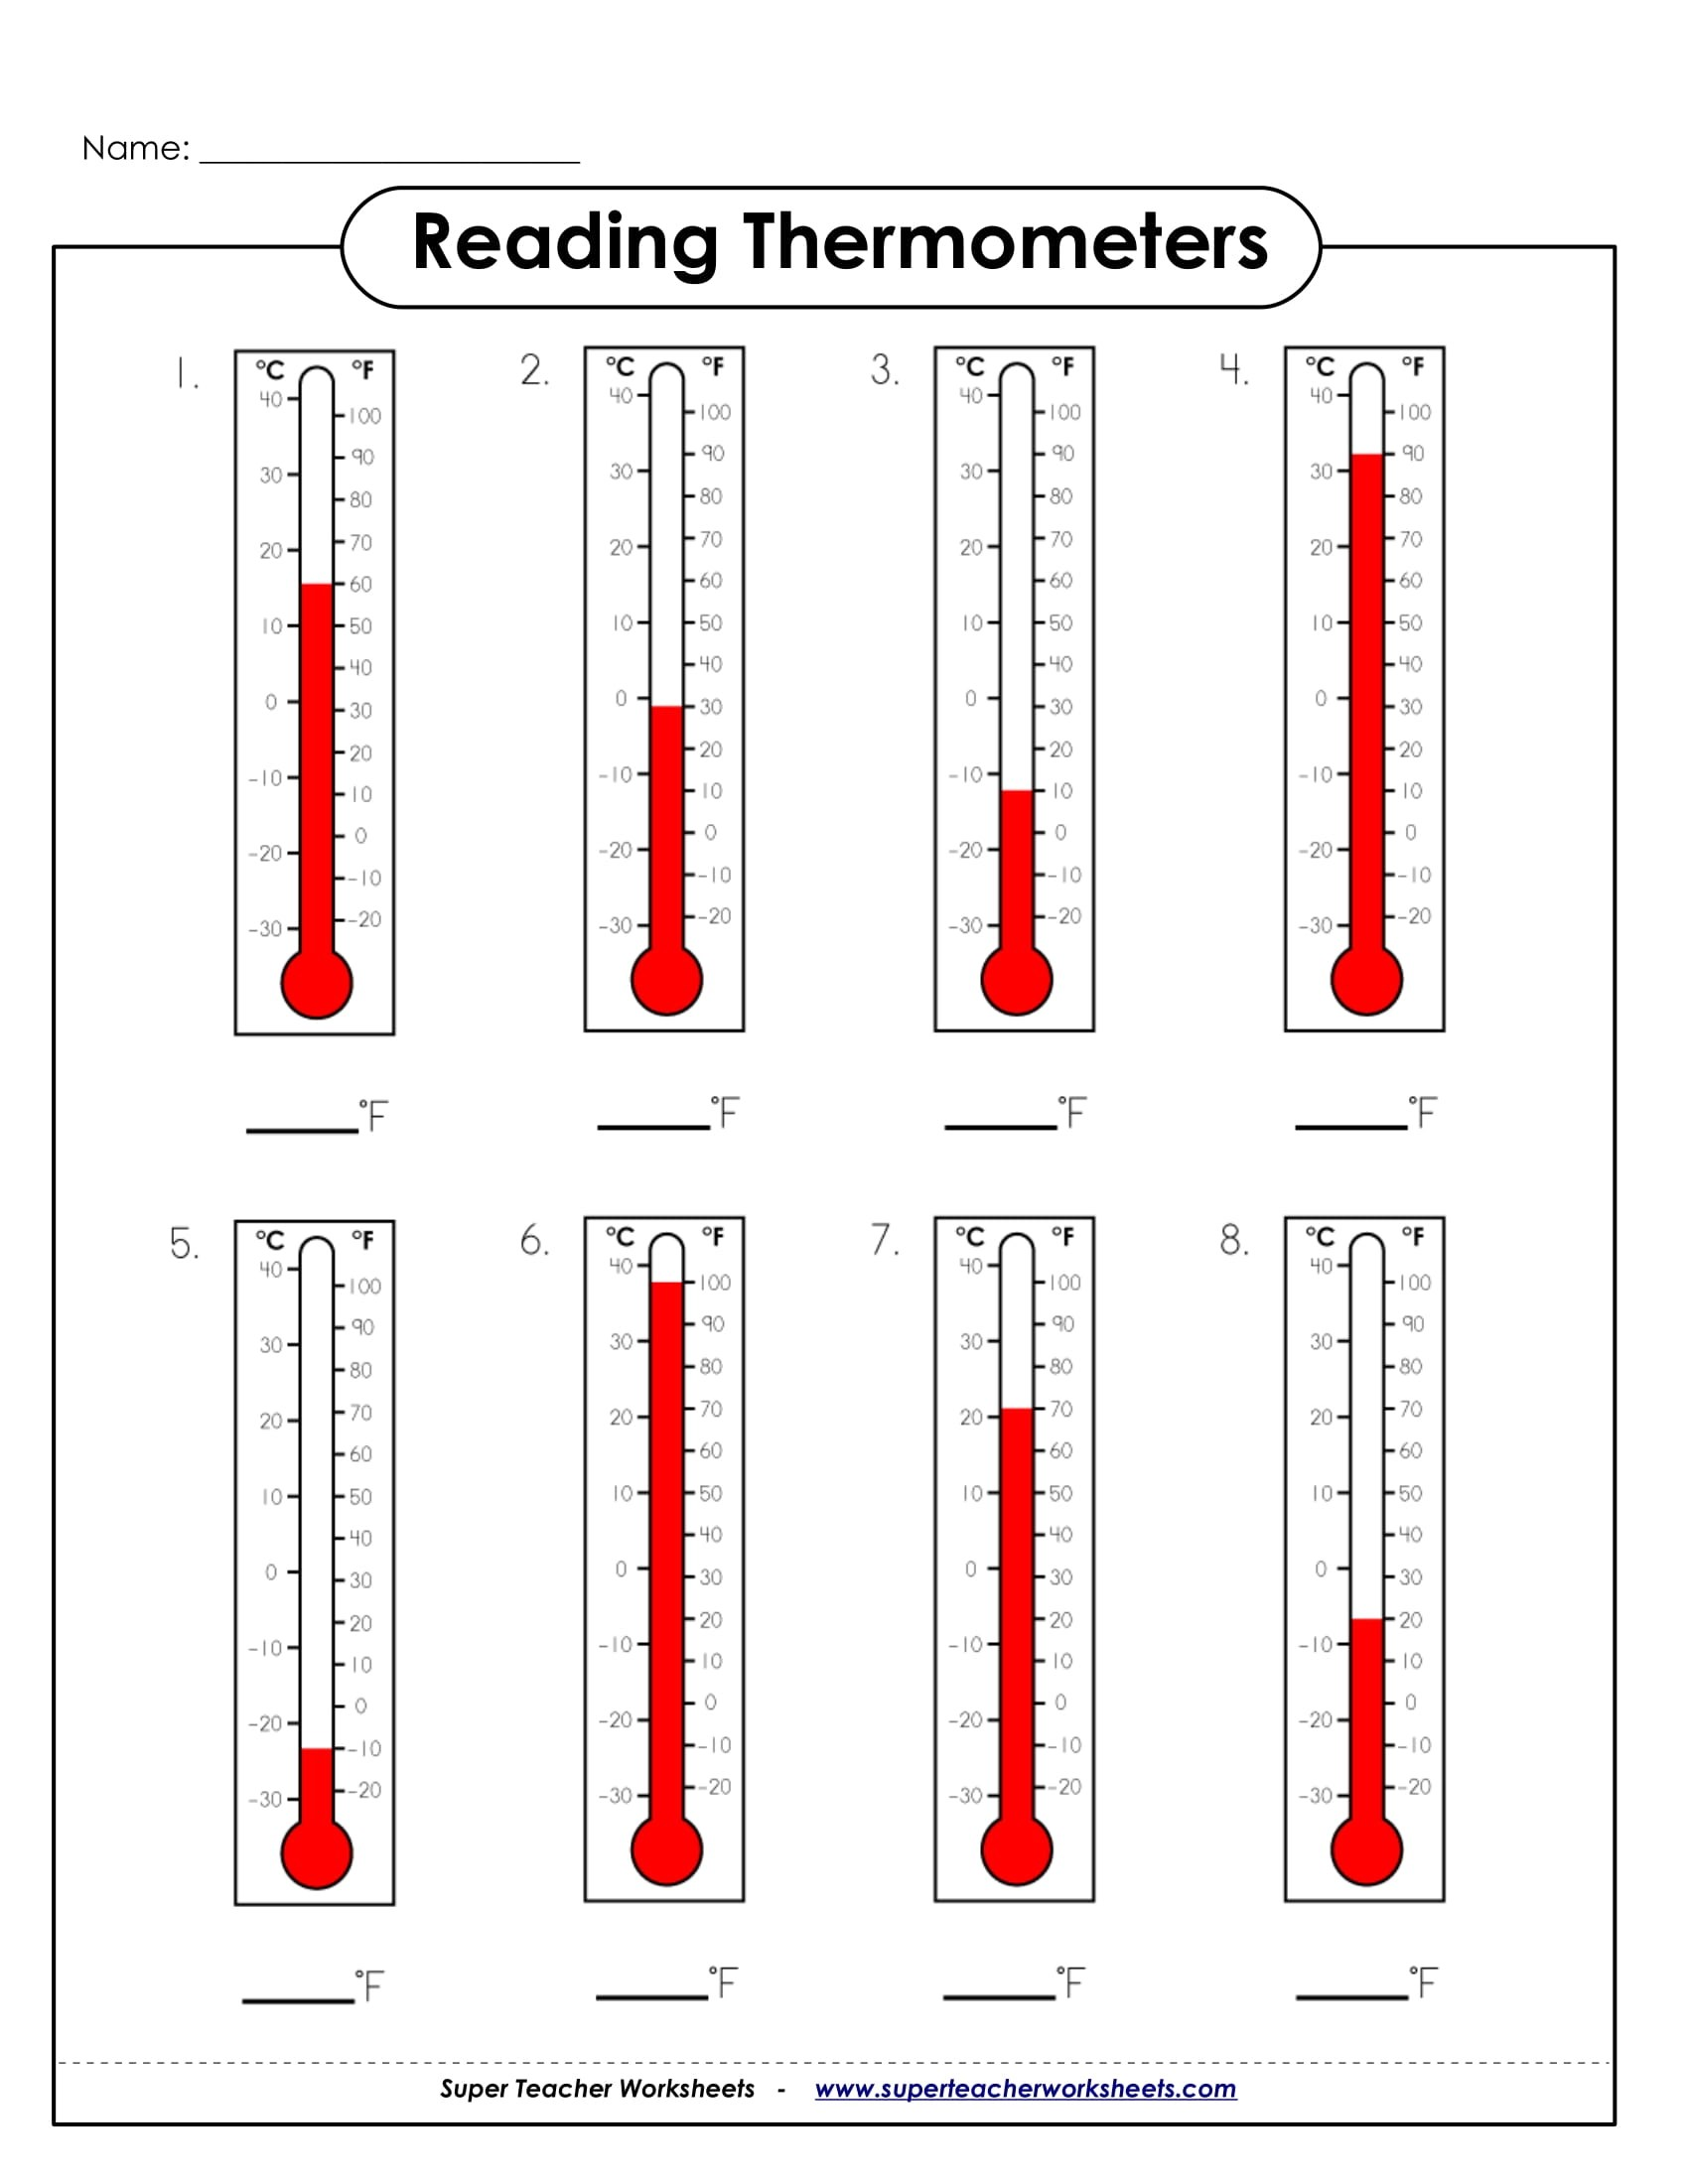 Reading Thermometers Sample Worksheet